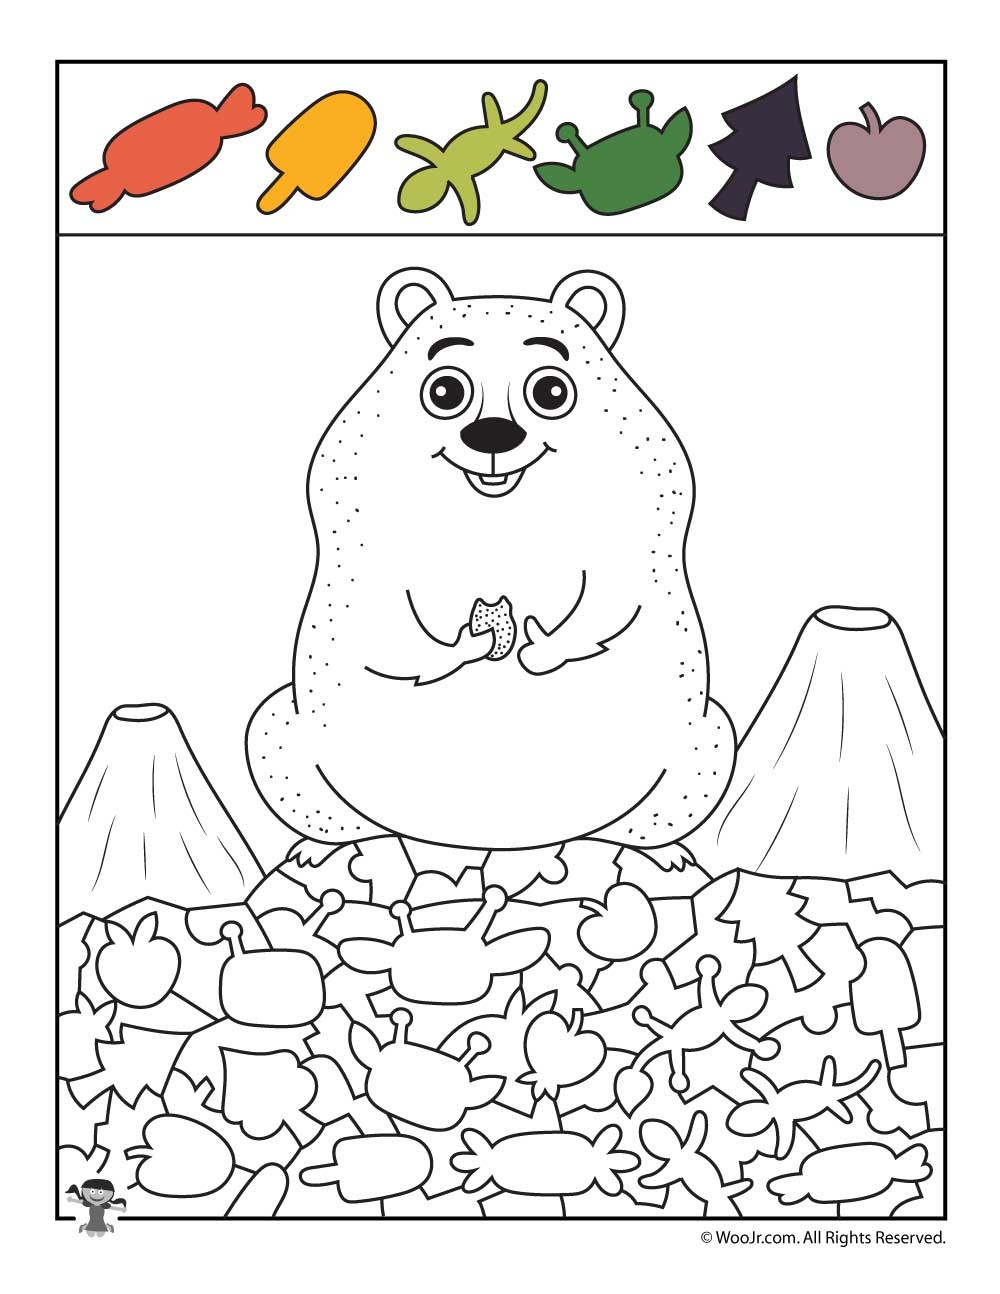 Coloring ~ Groundhog Day Coloring Pages Free Printable For Kids - Free Groundhog Printables Preschool